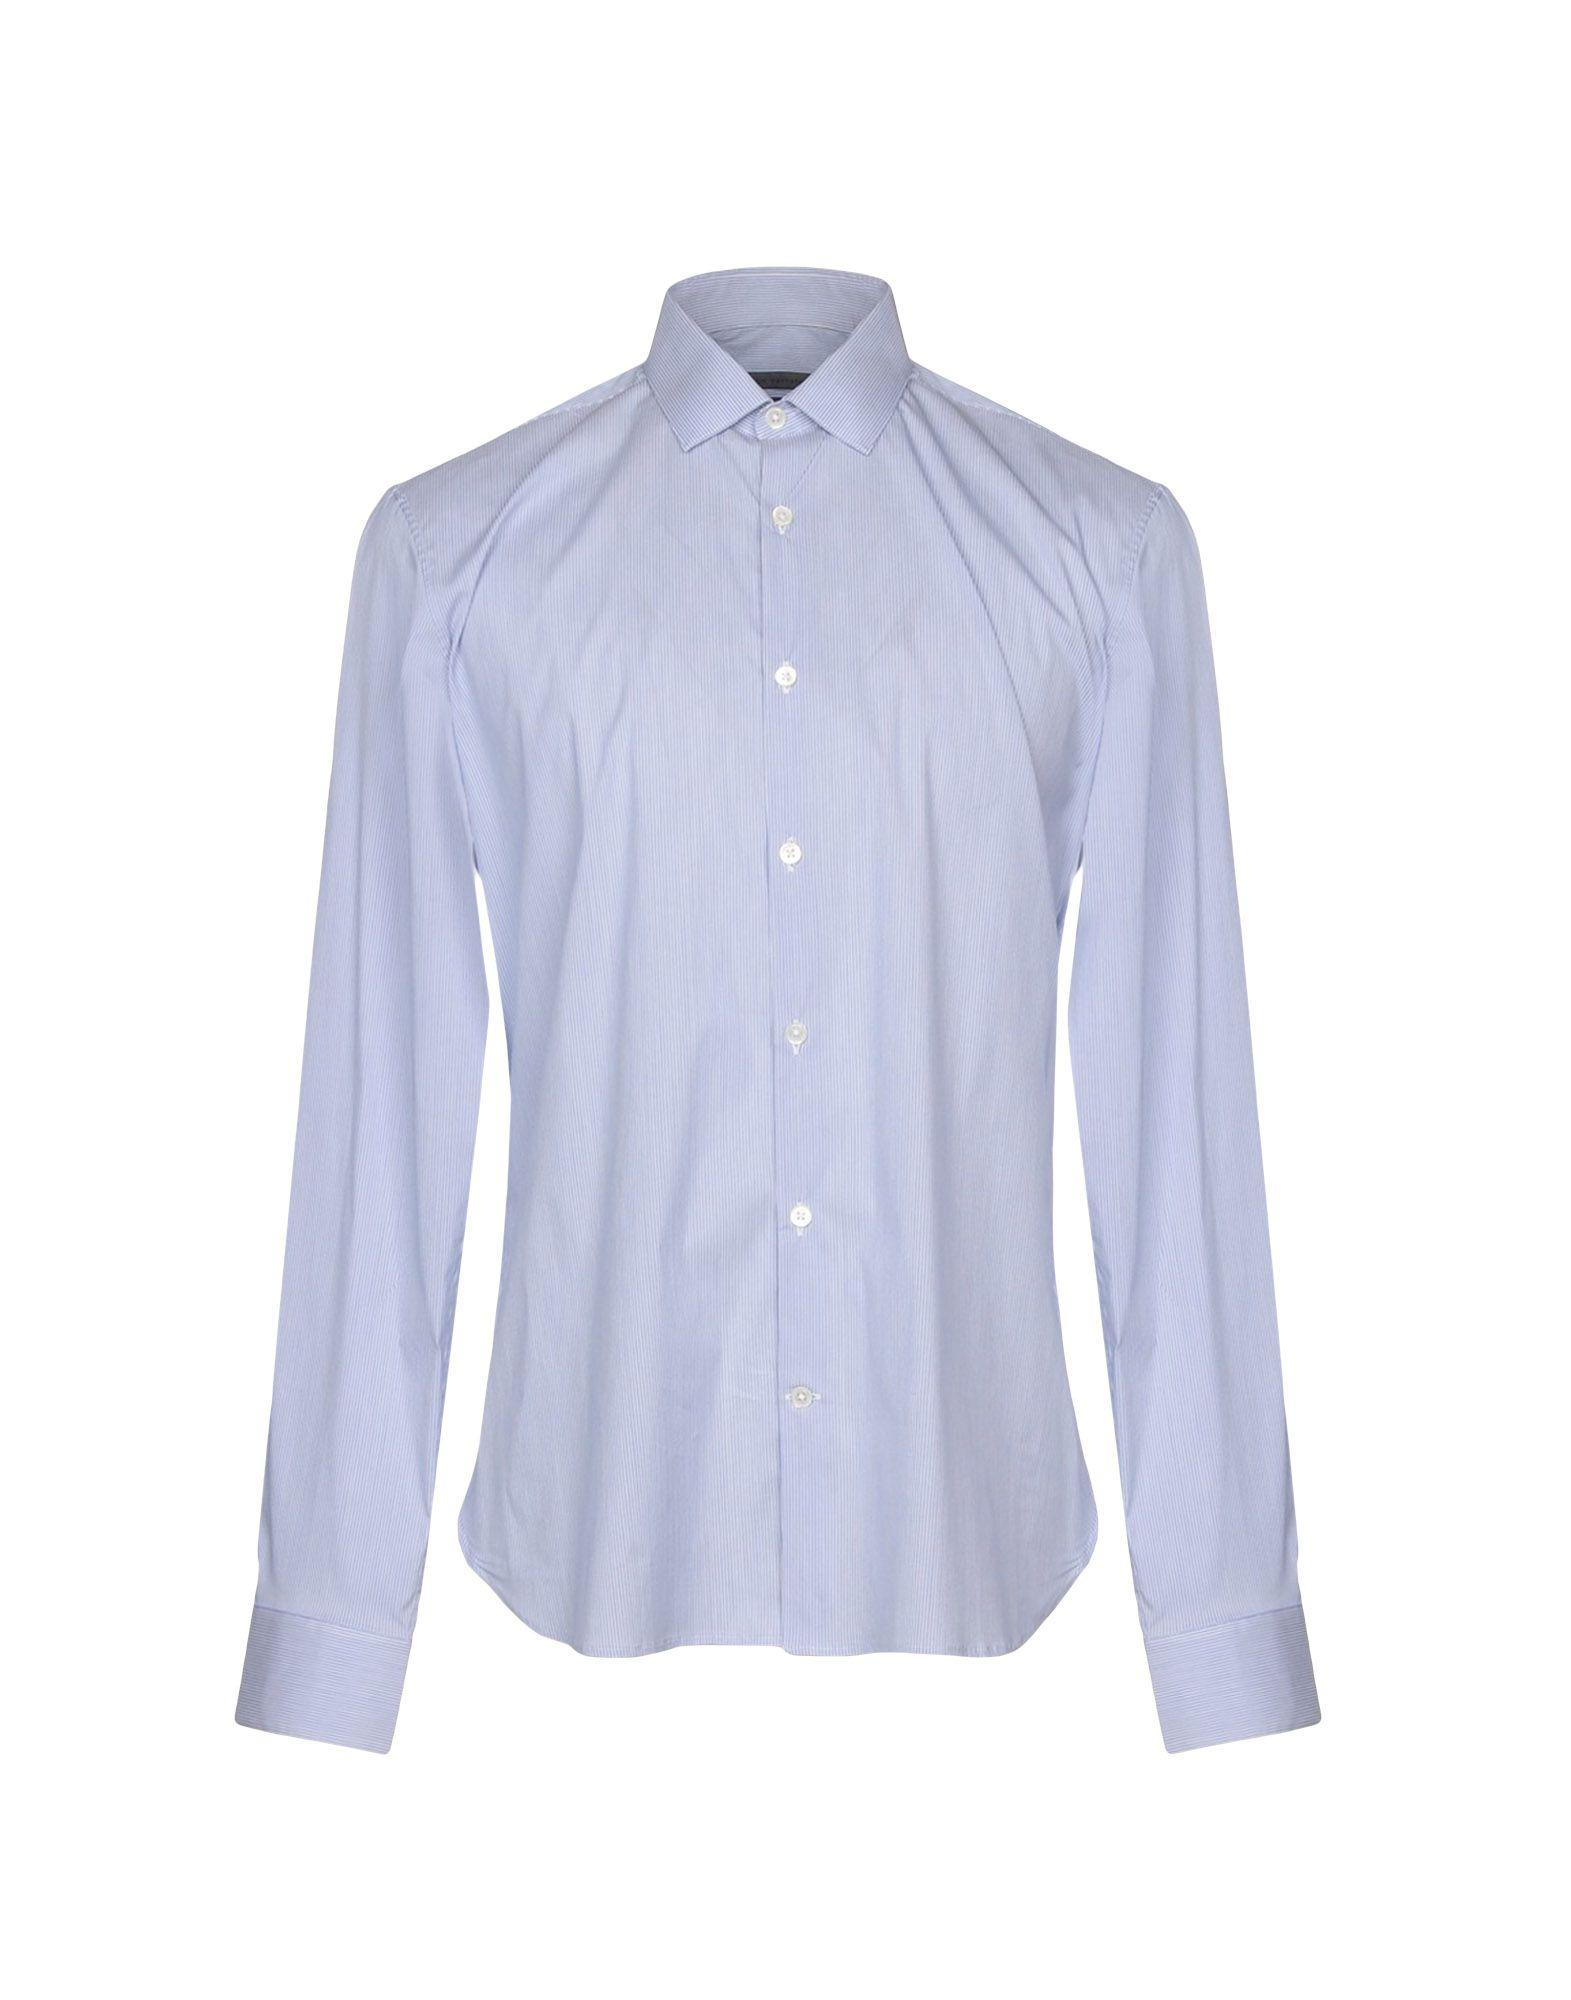 John Varvatos Shirts In Azure